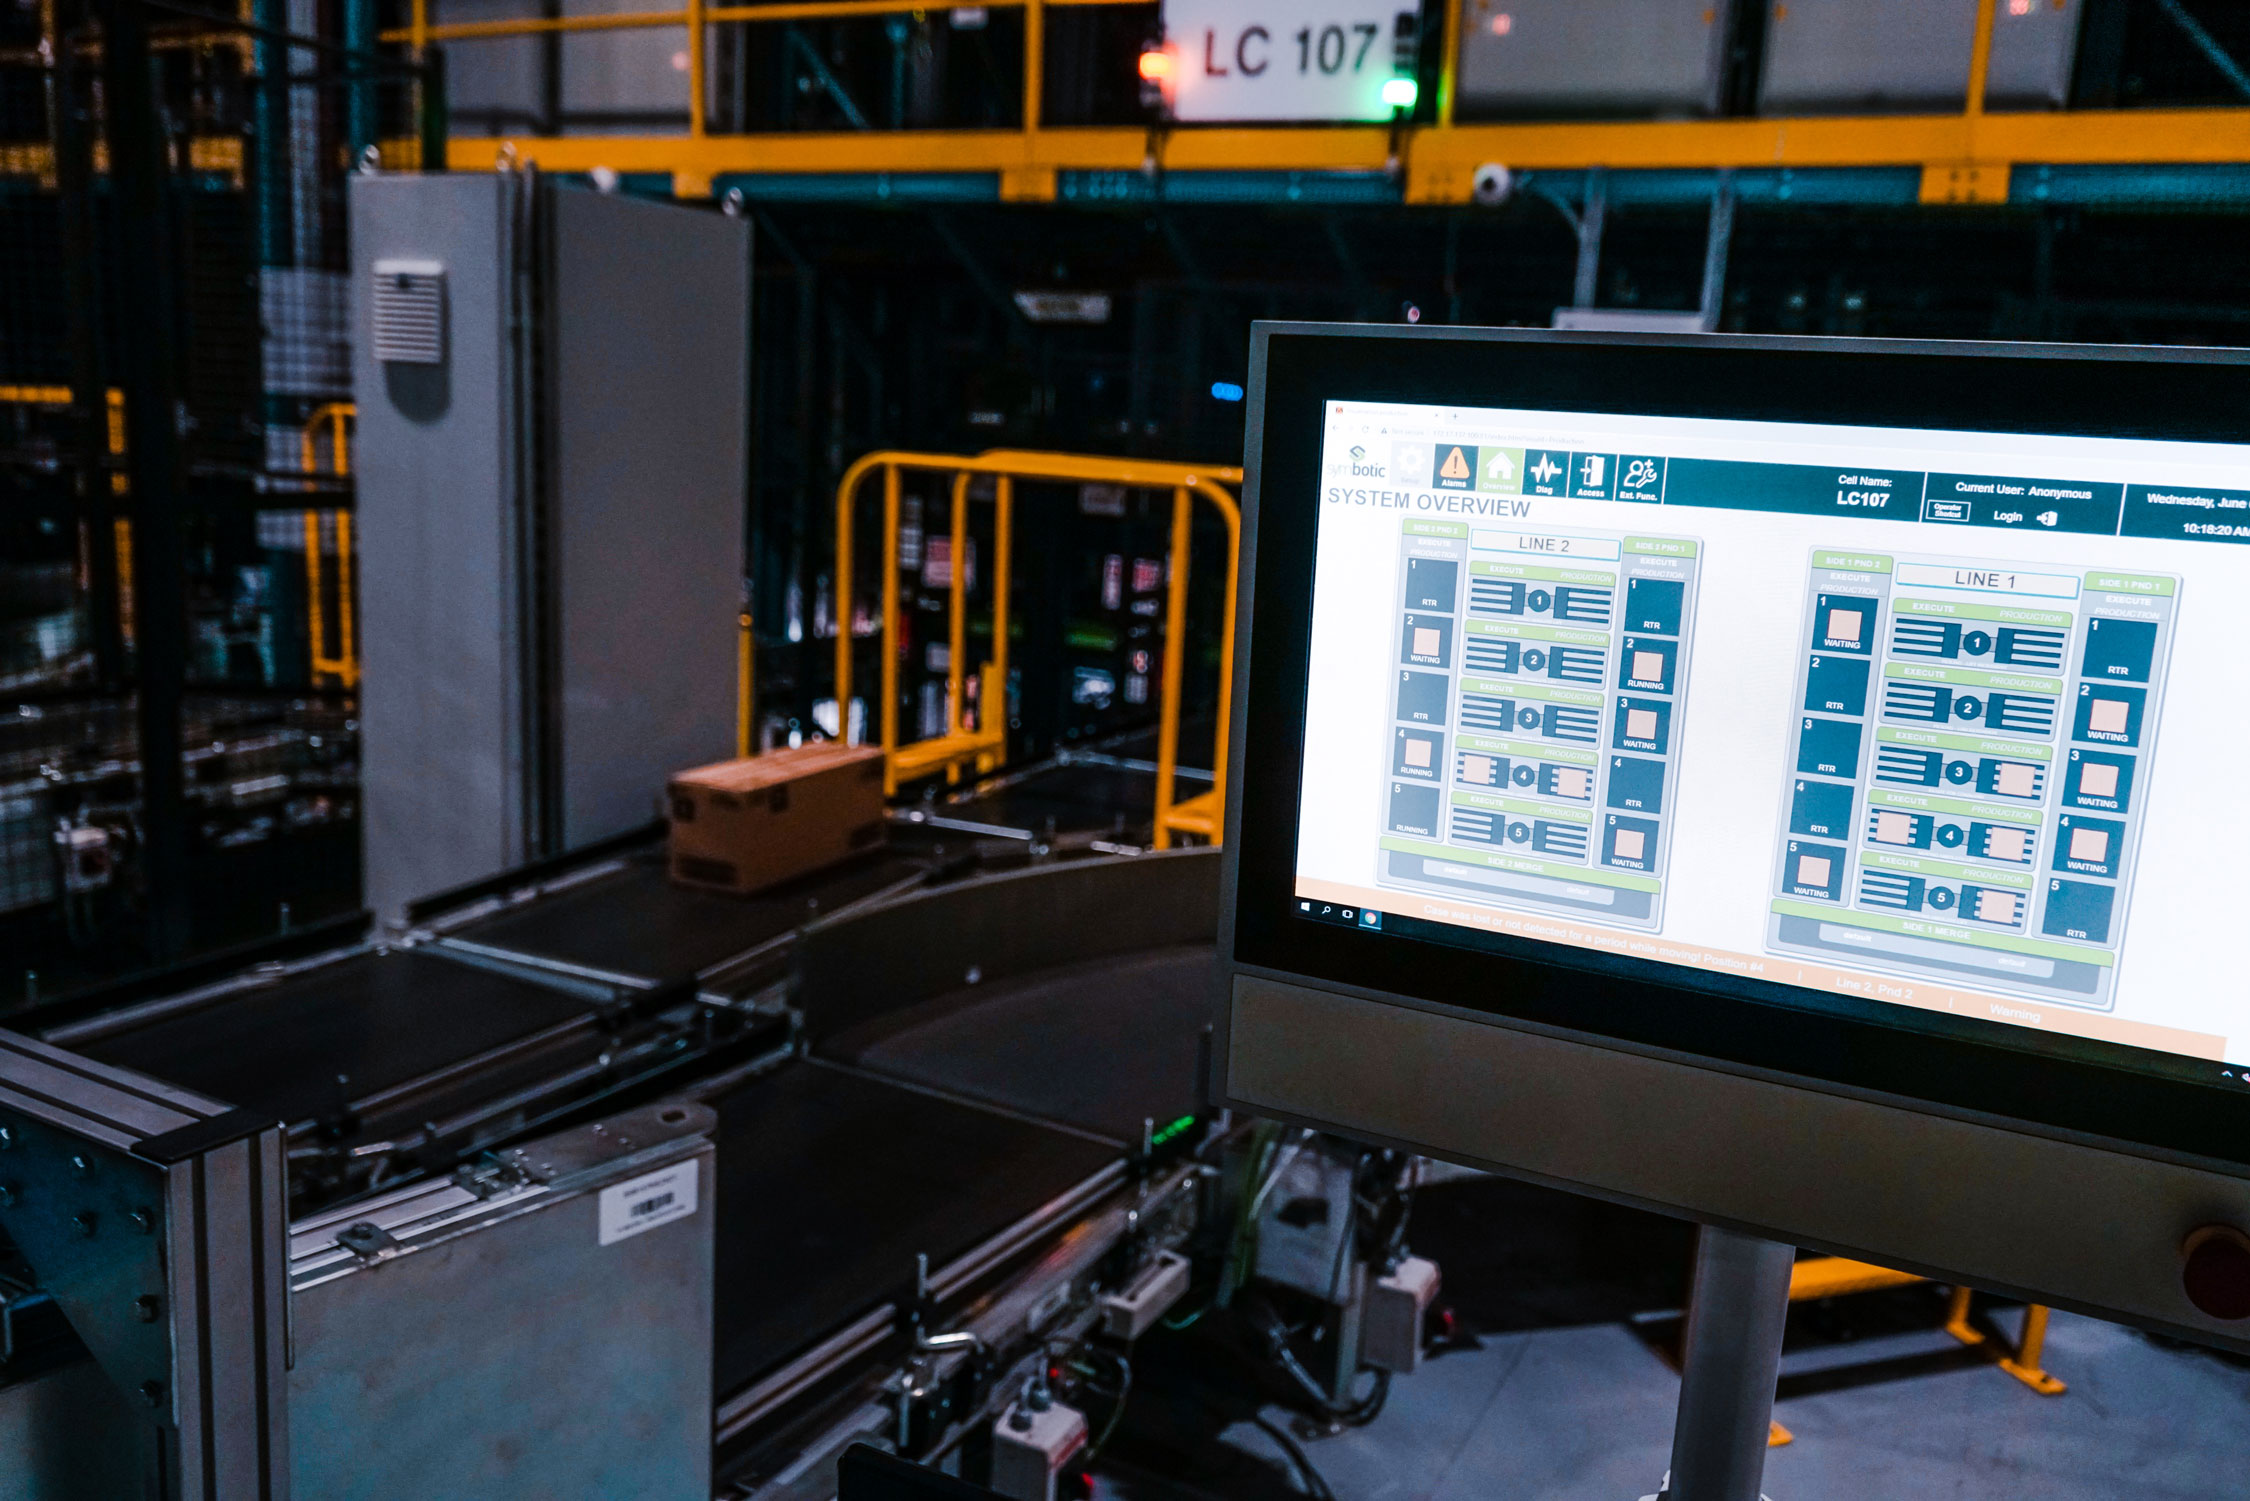 A view of the computer who's software controls the warehouse  and supply chain automation.